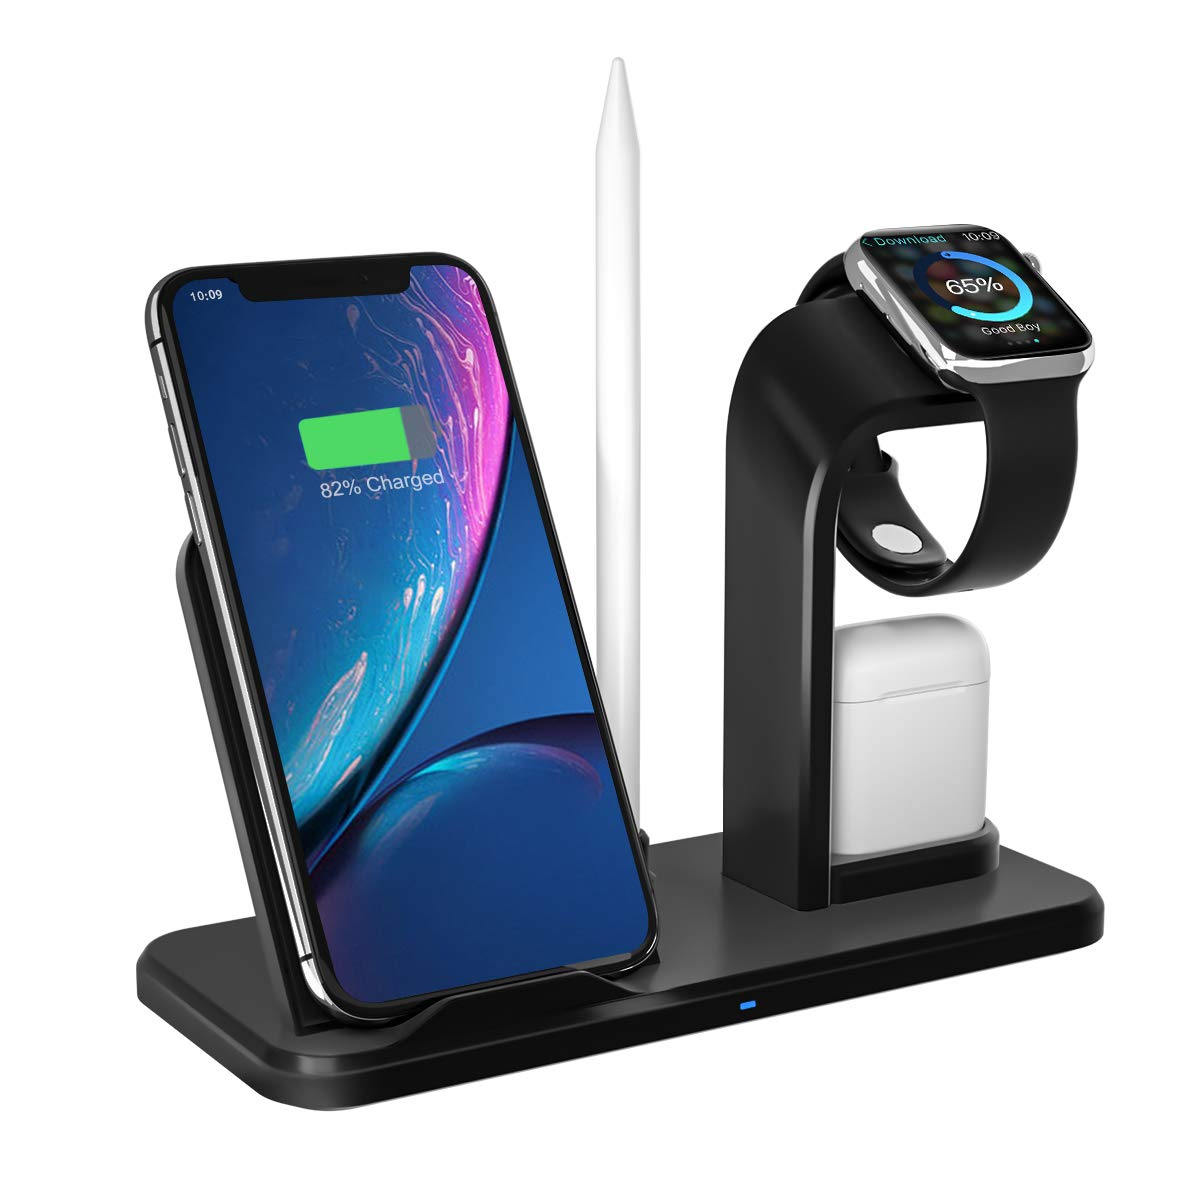 Wireless Charger Stand, APHQUA 3 in 1 Wireless Charging Stand Station for Airpods & Apple iWatch 4/3/2/1, Qi Fast Wireless Charger Fit for iPhone X/XS/XS Max/XR/8/8+ Samsung Galaxy S10/S9/S7